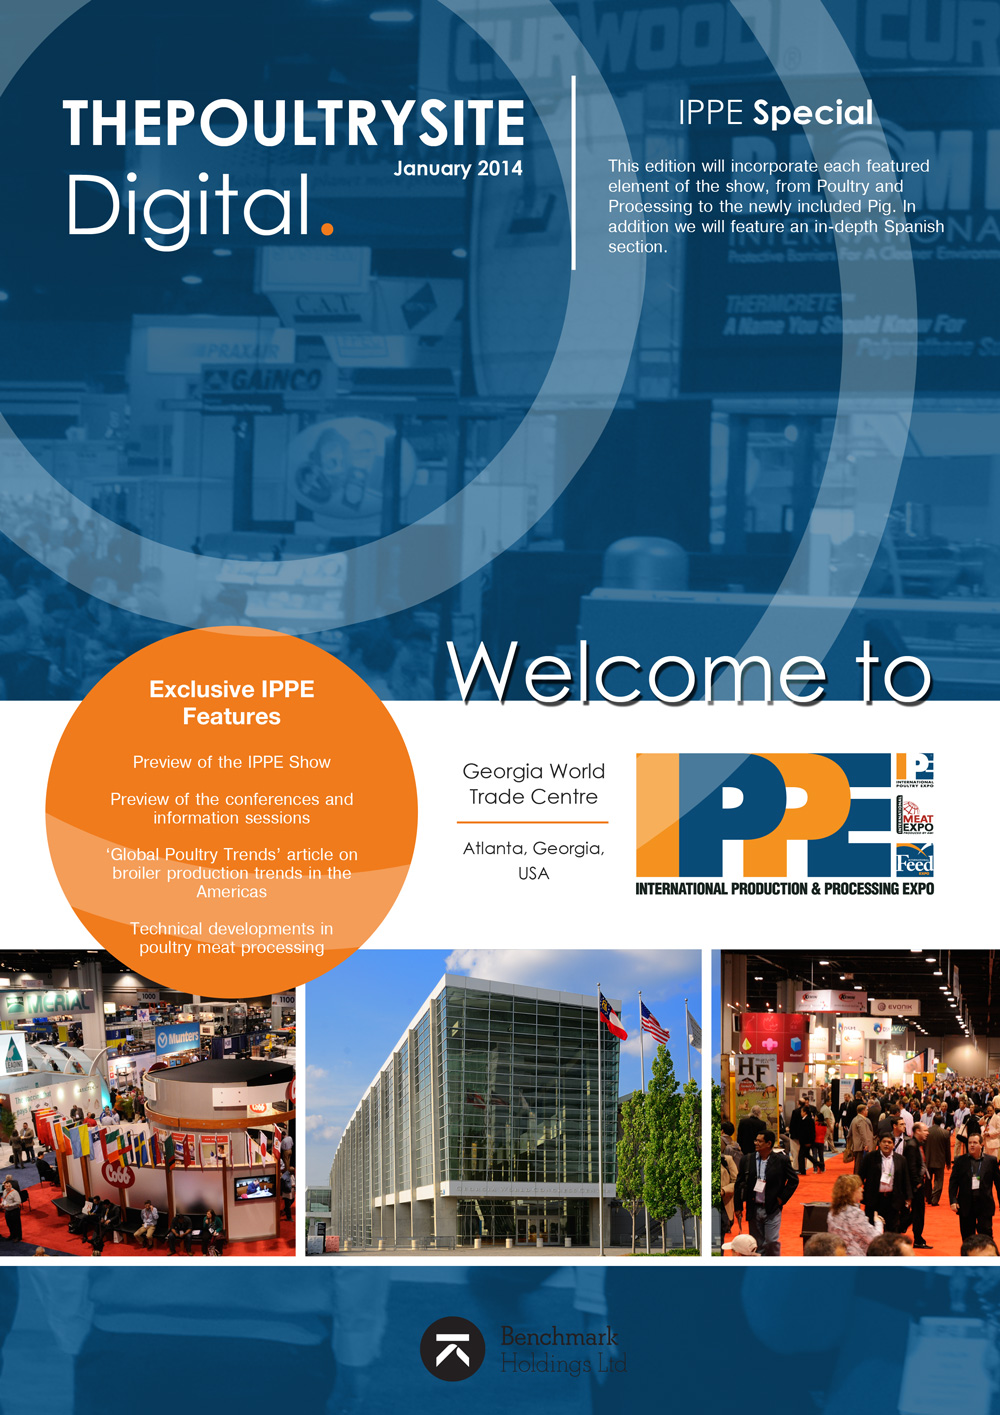 The Poultry Site Digital - IPPE Special!